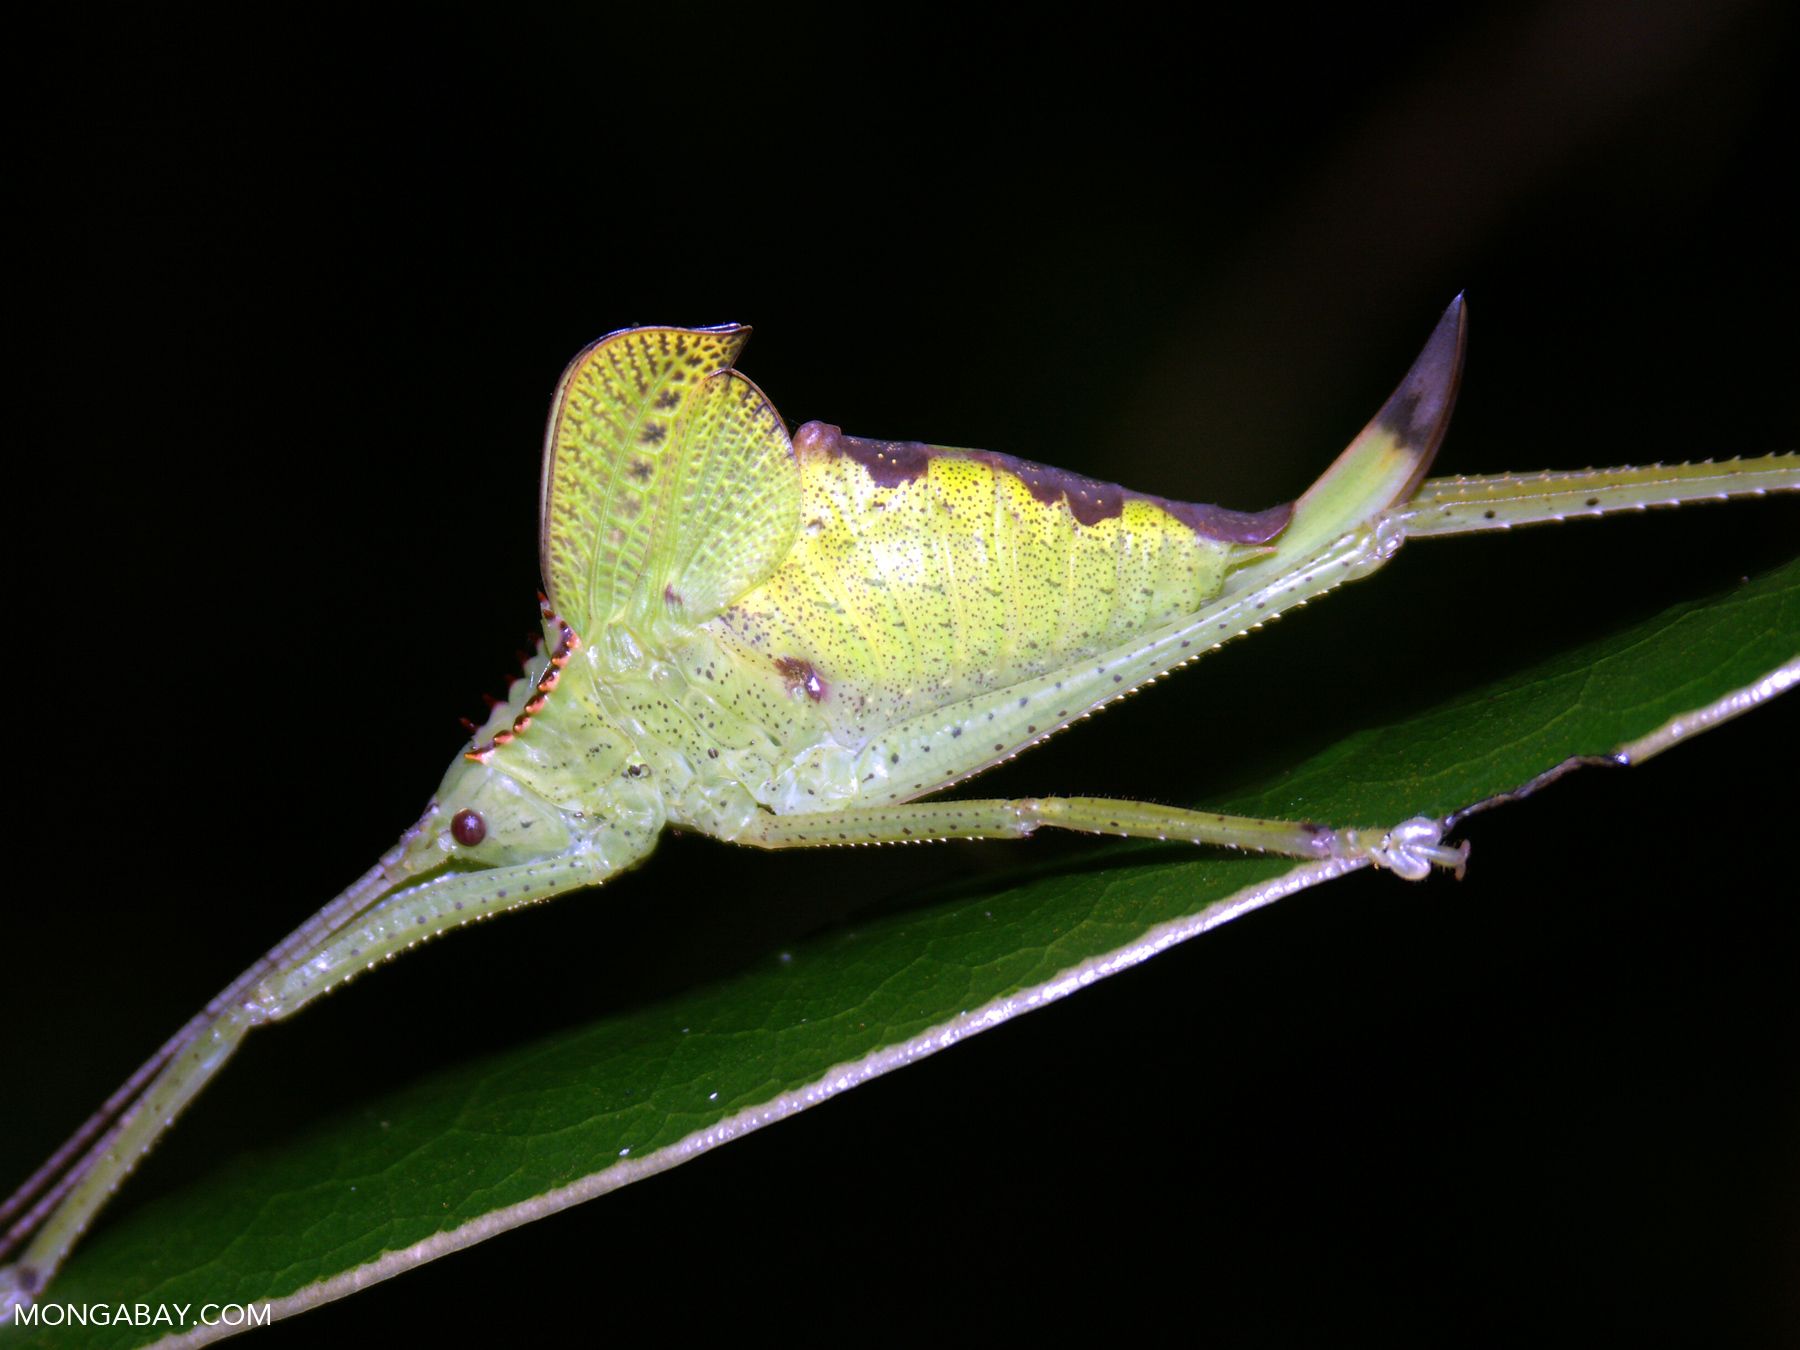 A leaf insect in Madagascar.